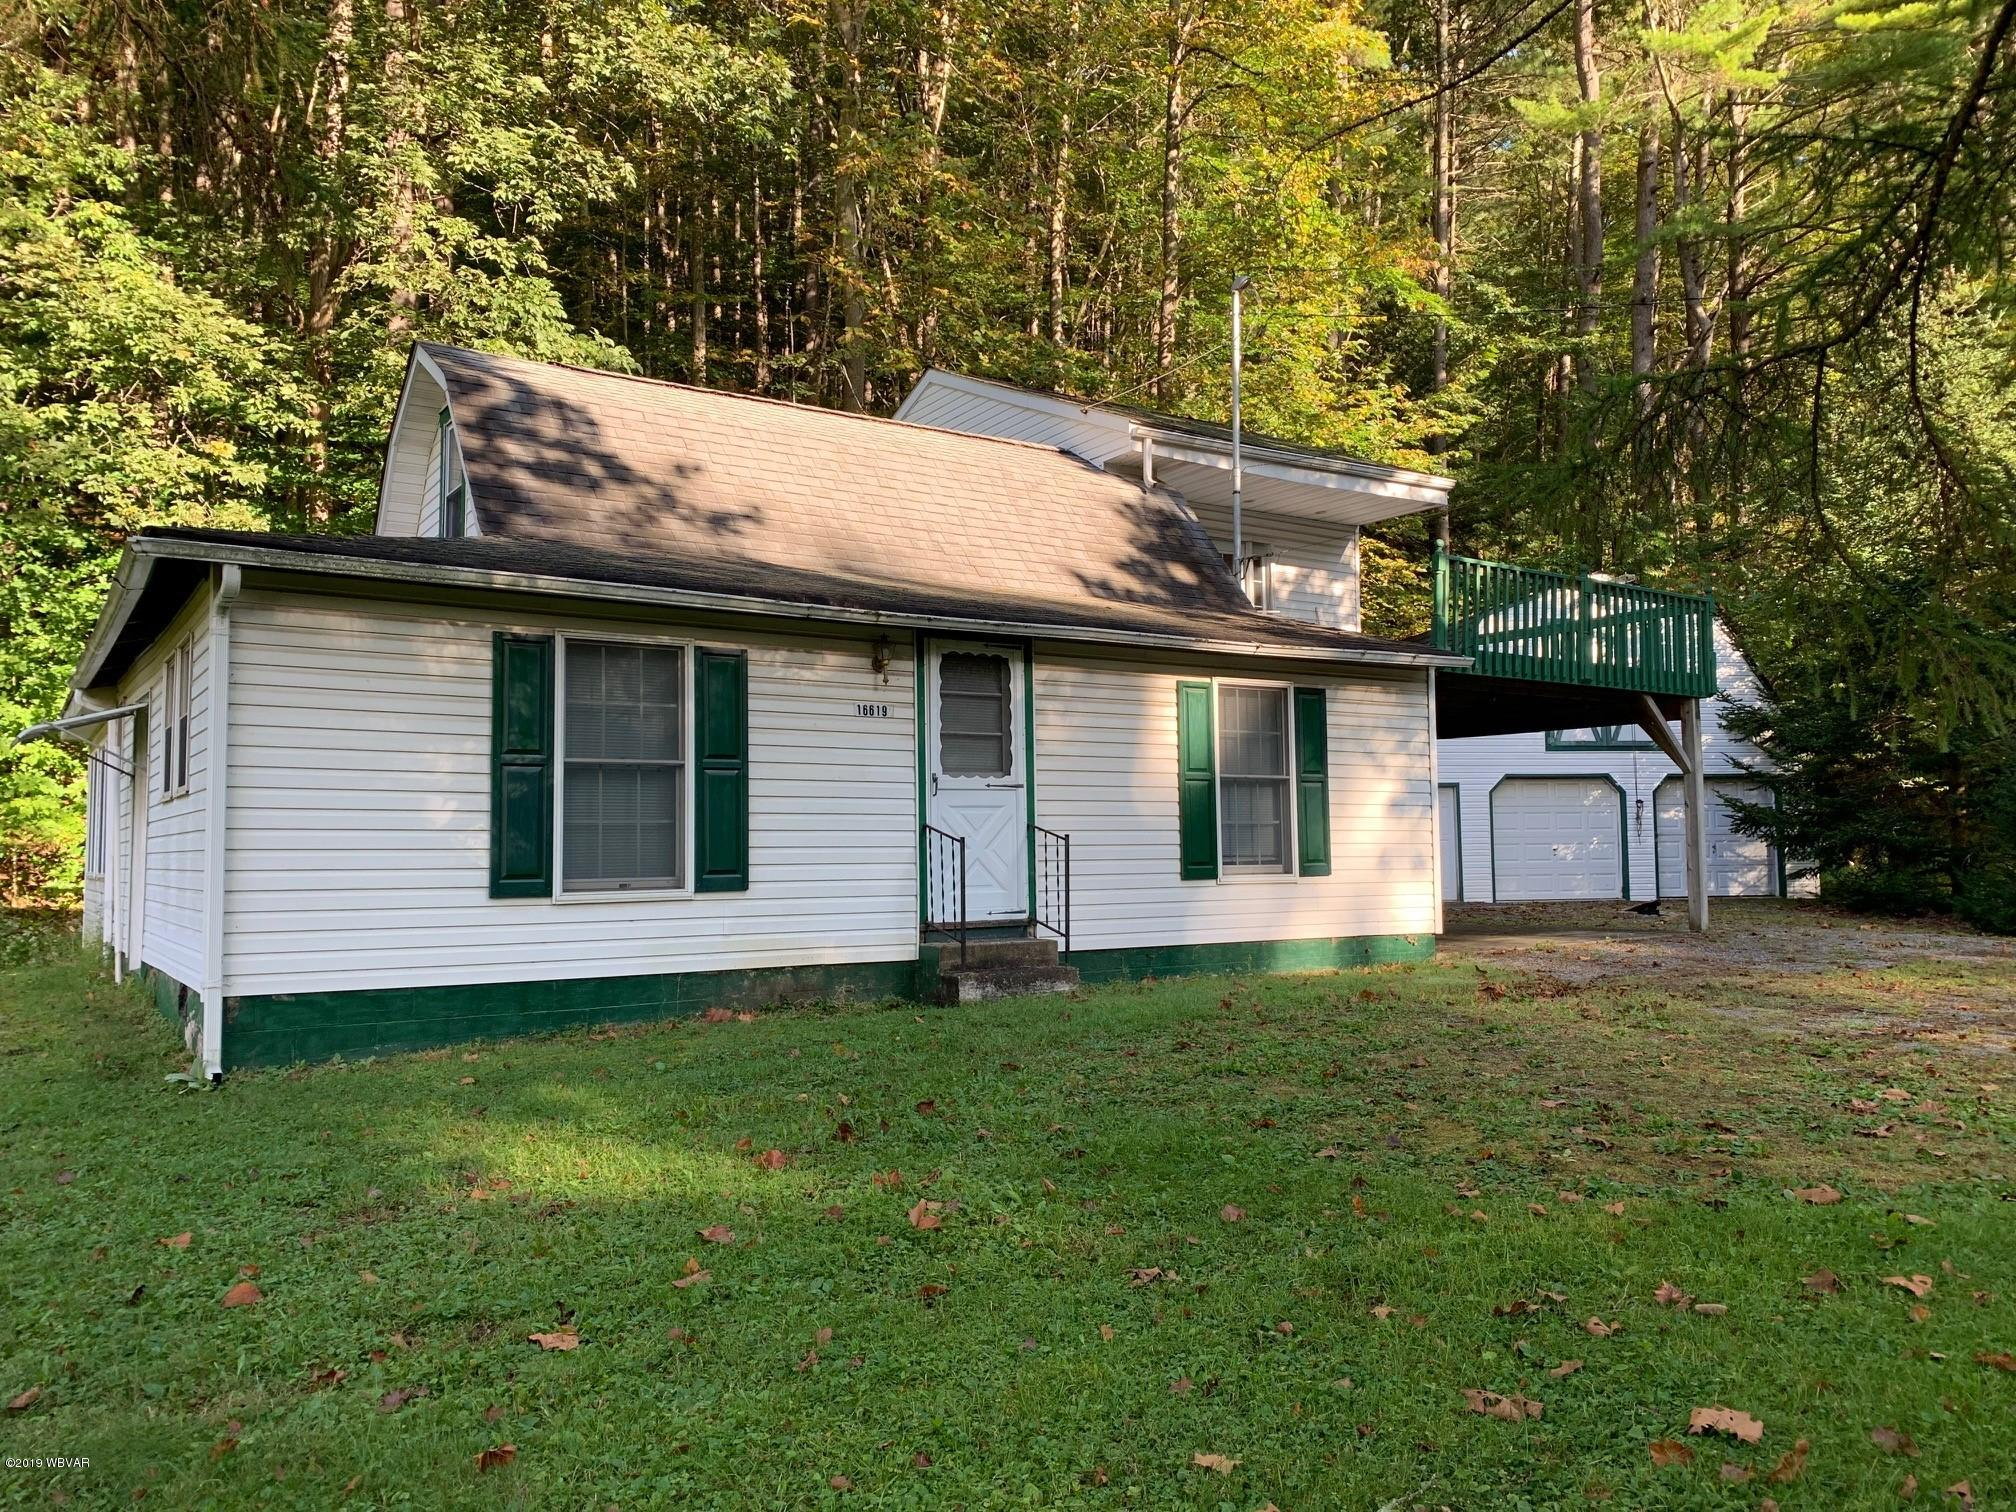 16619 PA-287 ROUTE,Waterville,PA 17776,3 Bedrooms Bedrooms,2 BathroomsBathrooms,Residential,PA-287,WB-88580